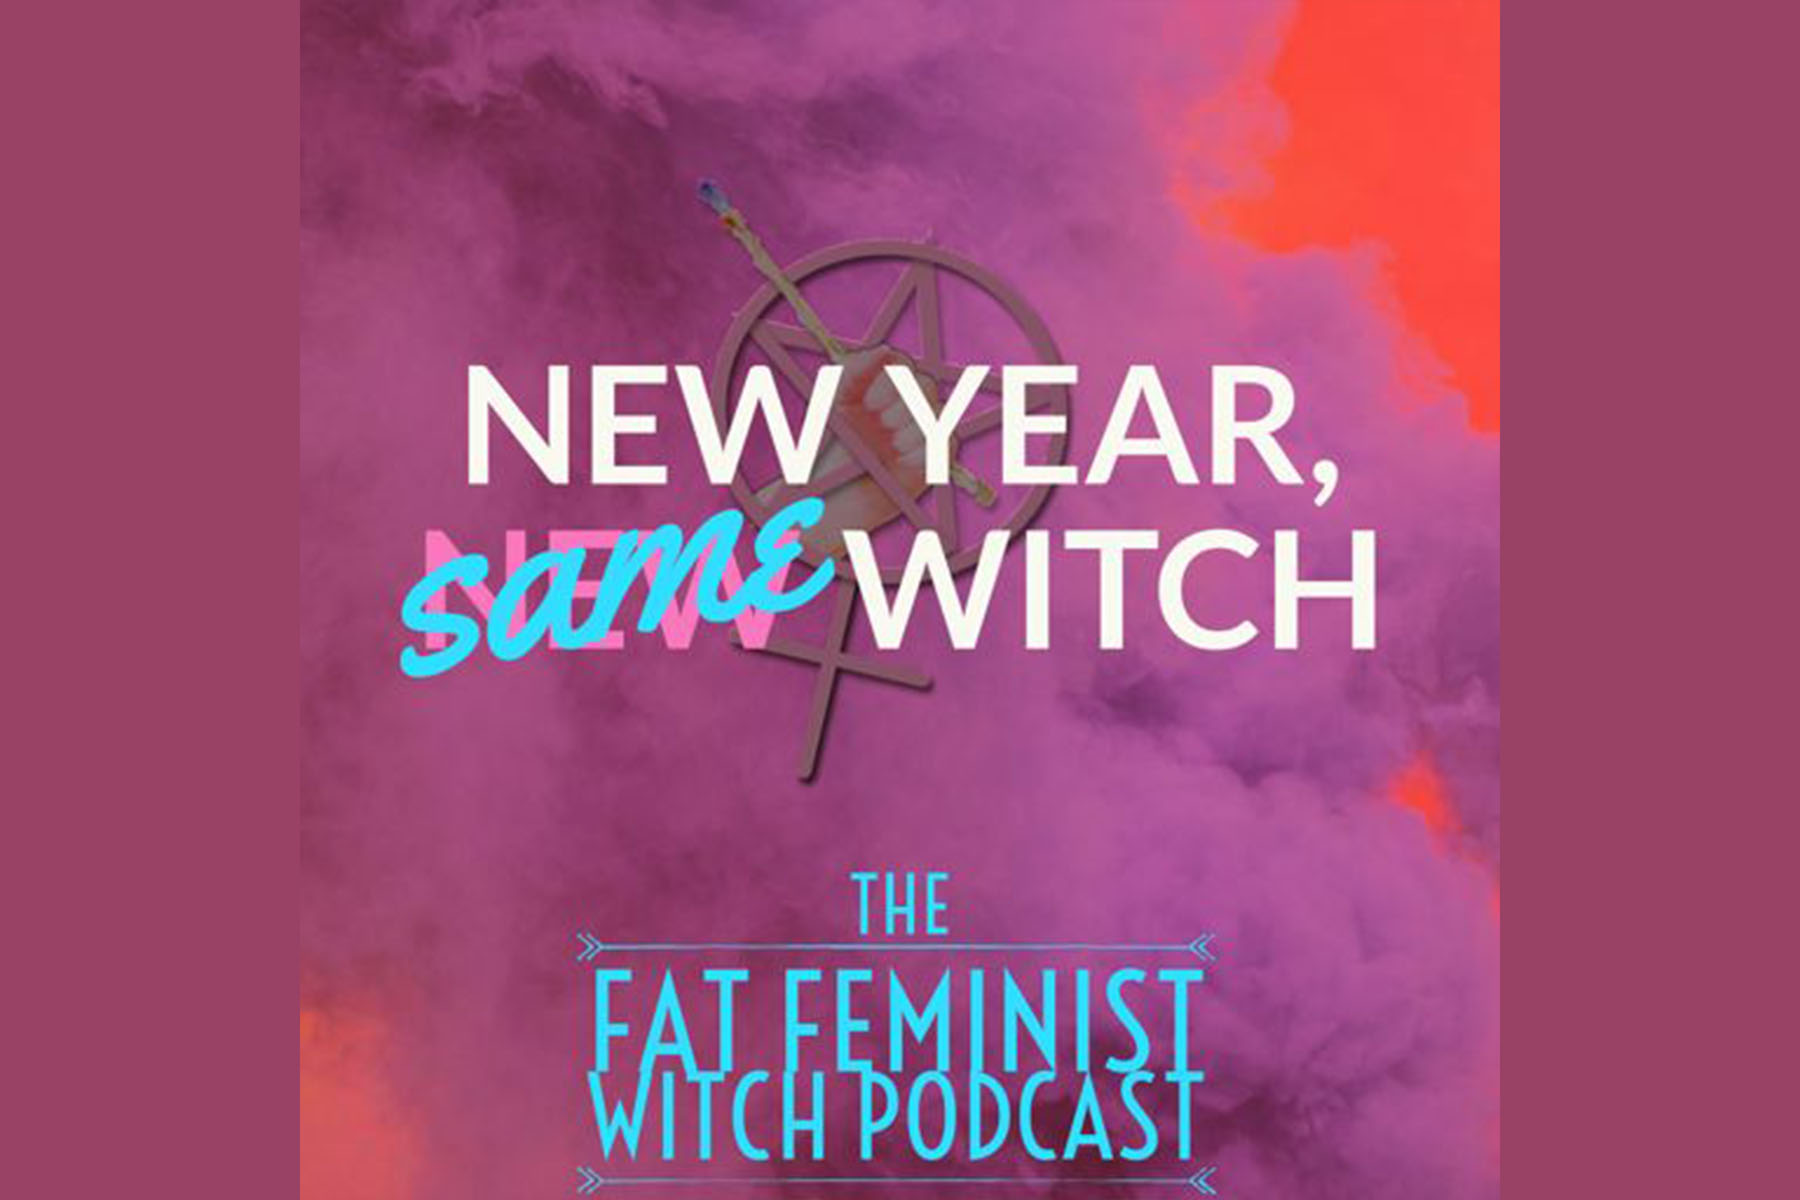 fat feminist witch